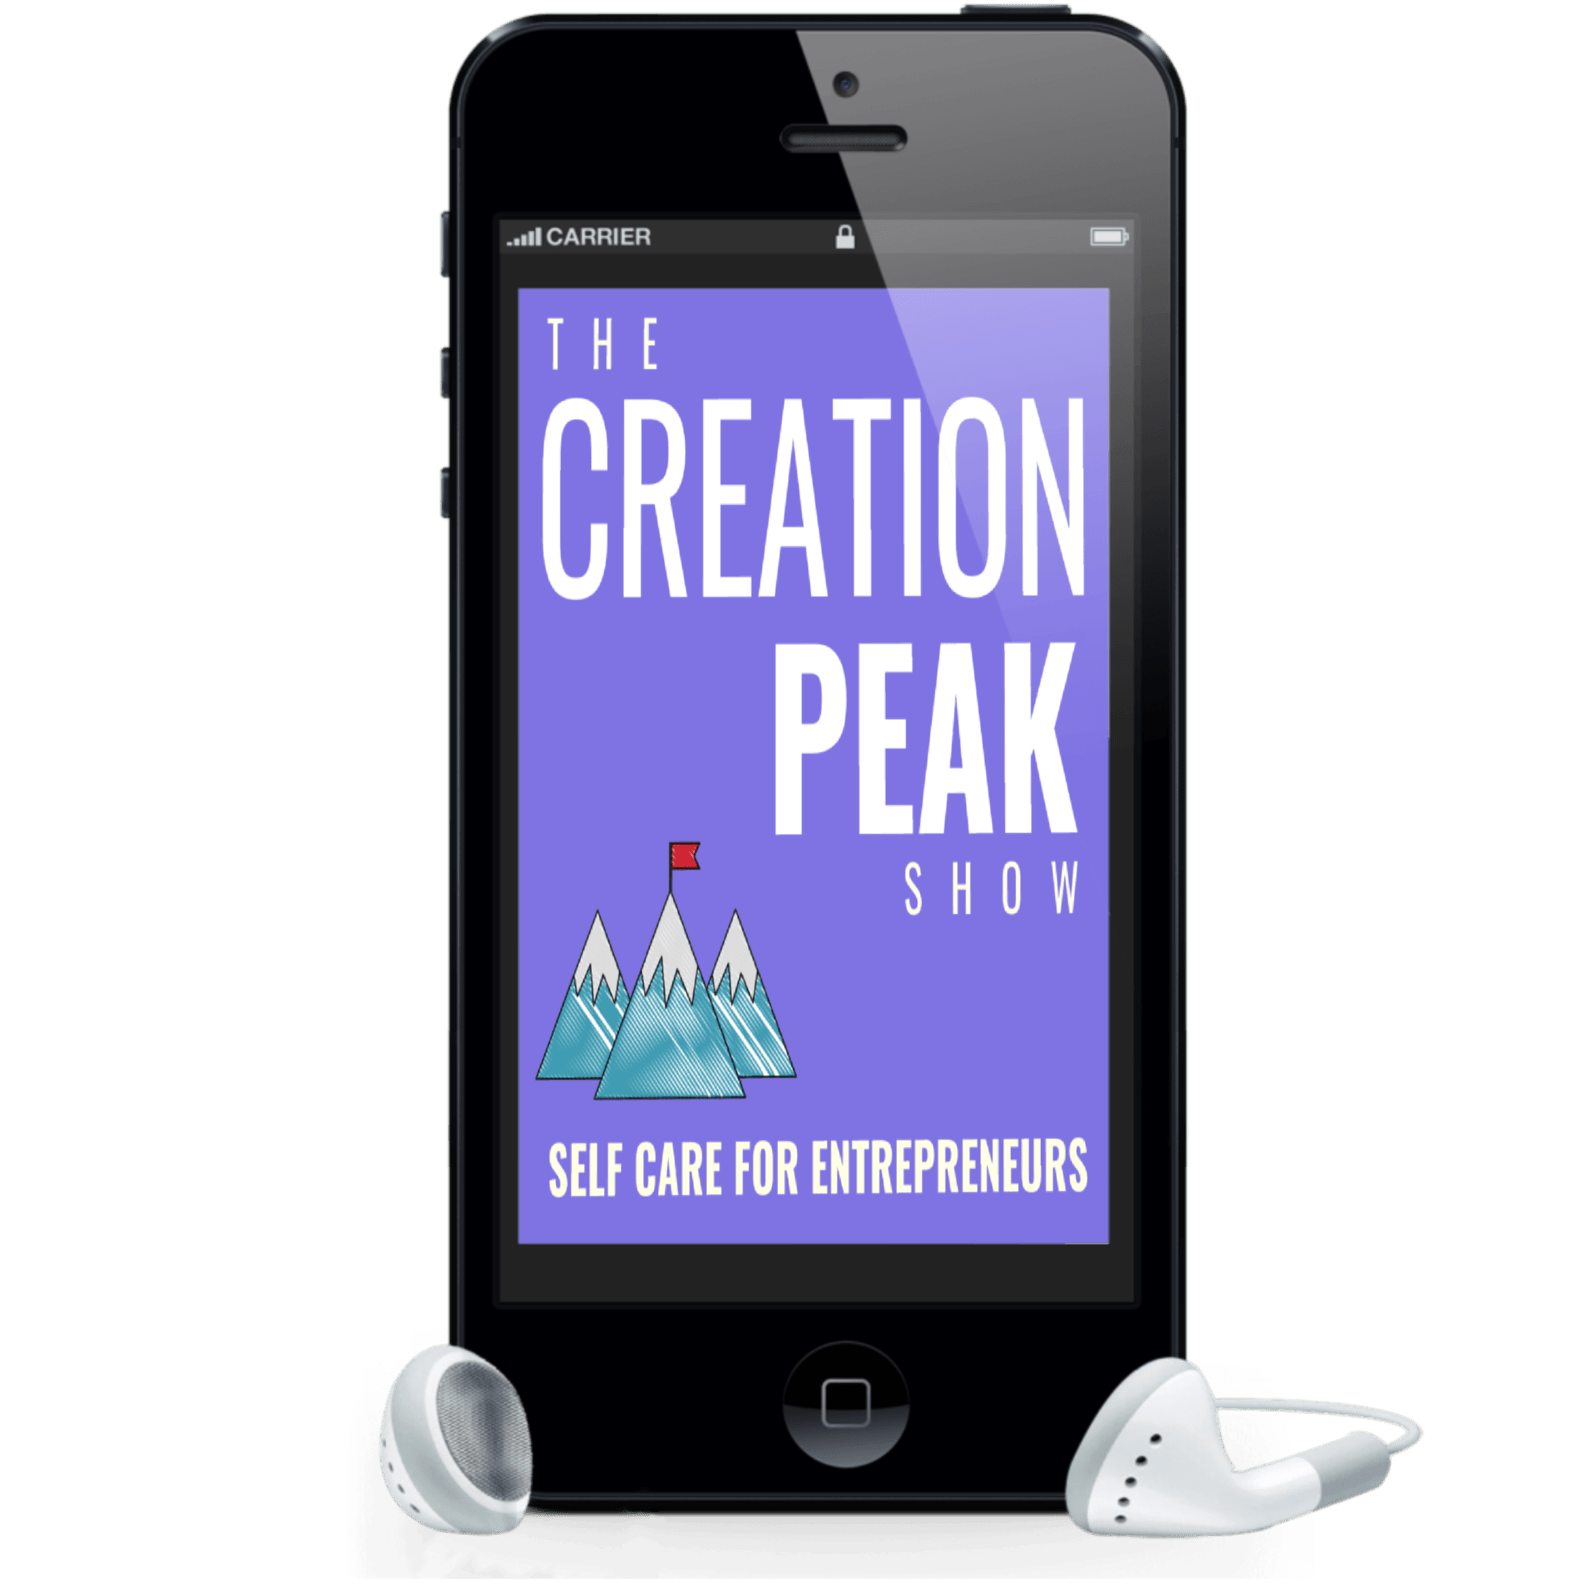 Entrepreneurial Mindset and Self Care, The Creation Peak Show Podcast iPhone image